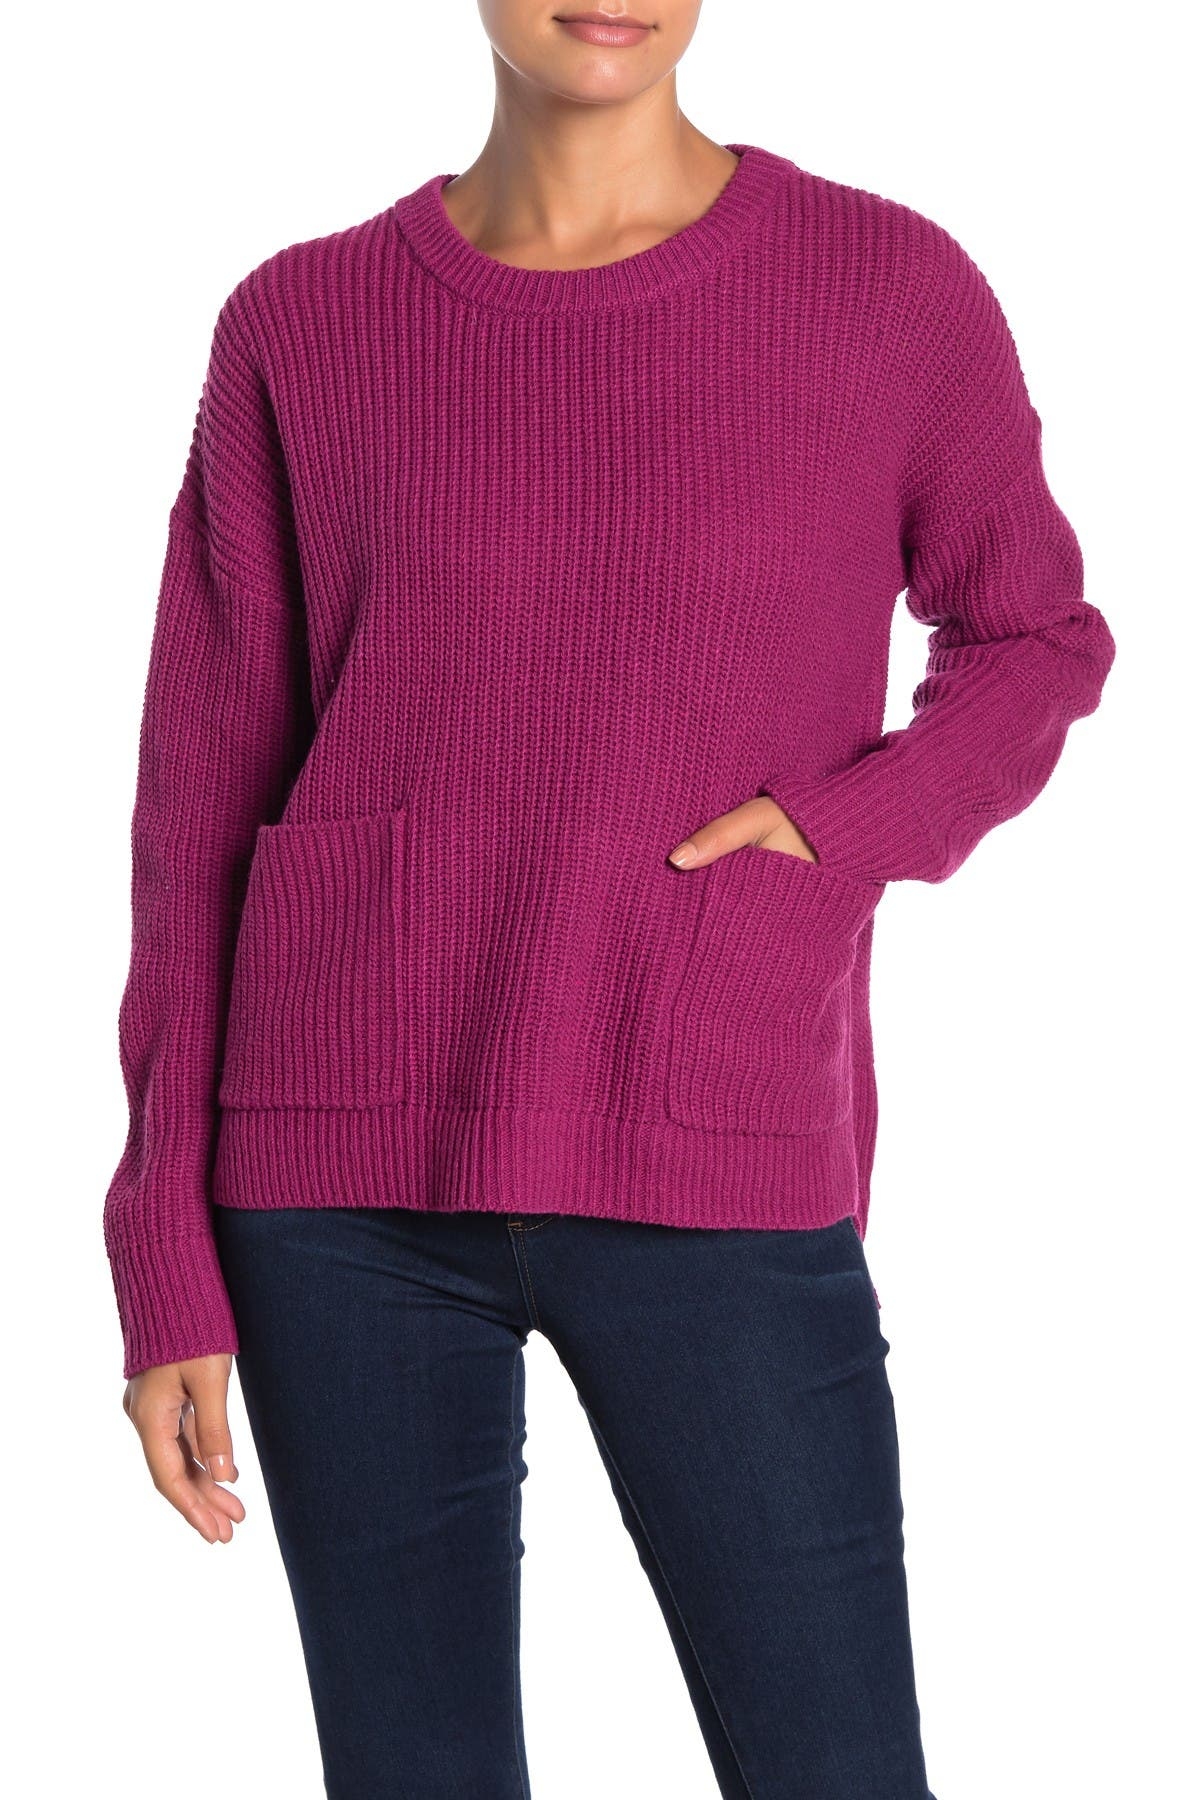 Image of MELLODAY Two Pocket Crew Neck Sweater